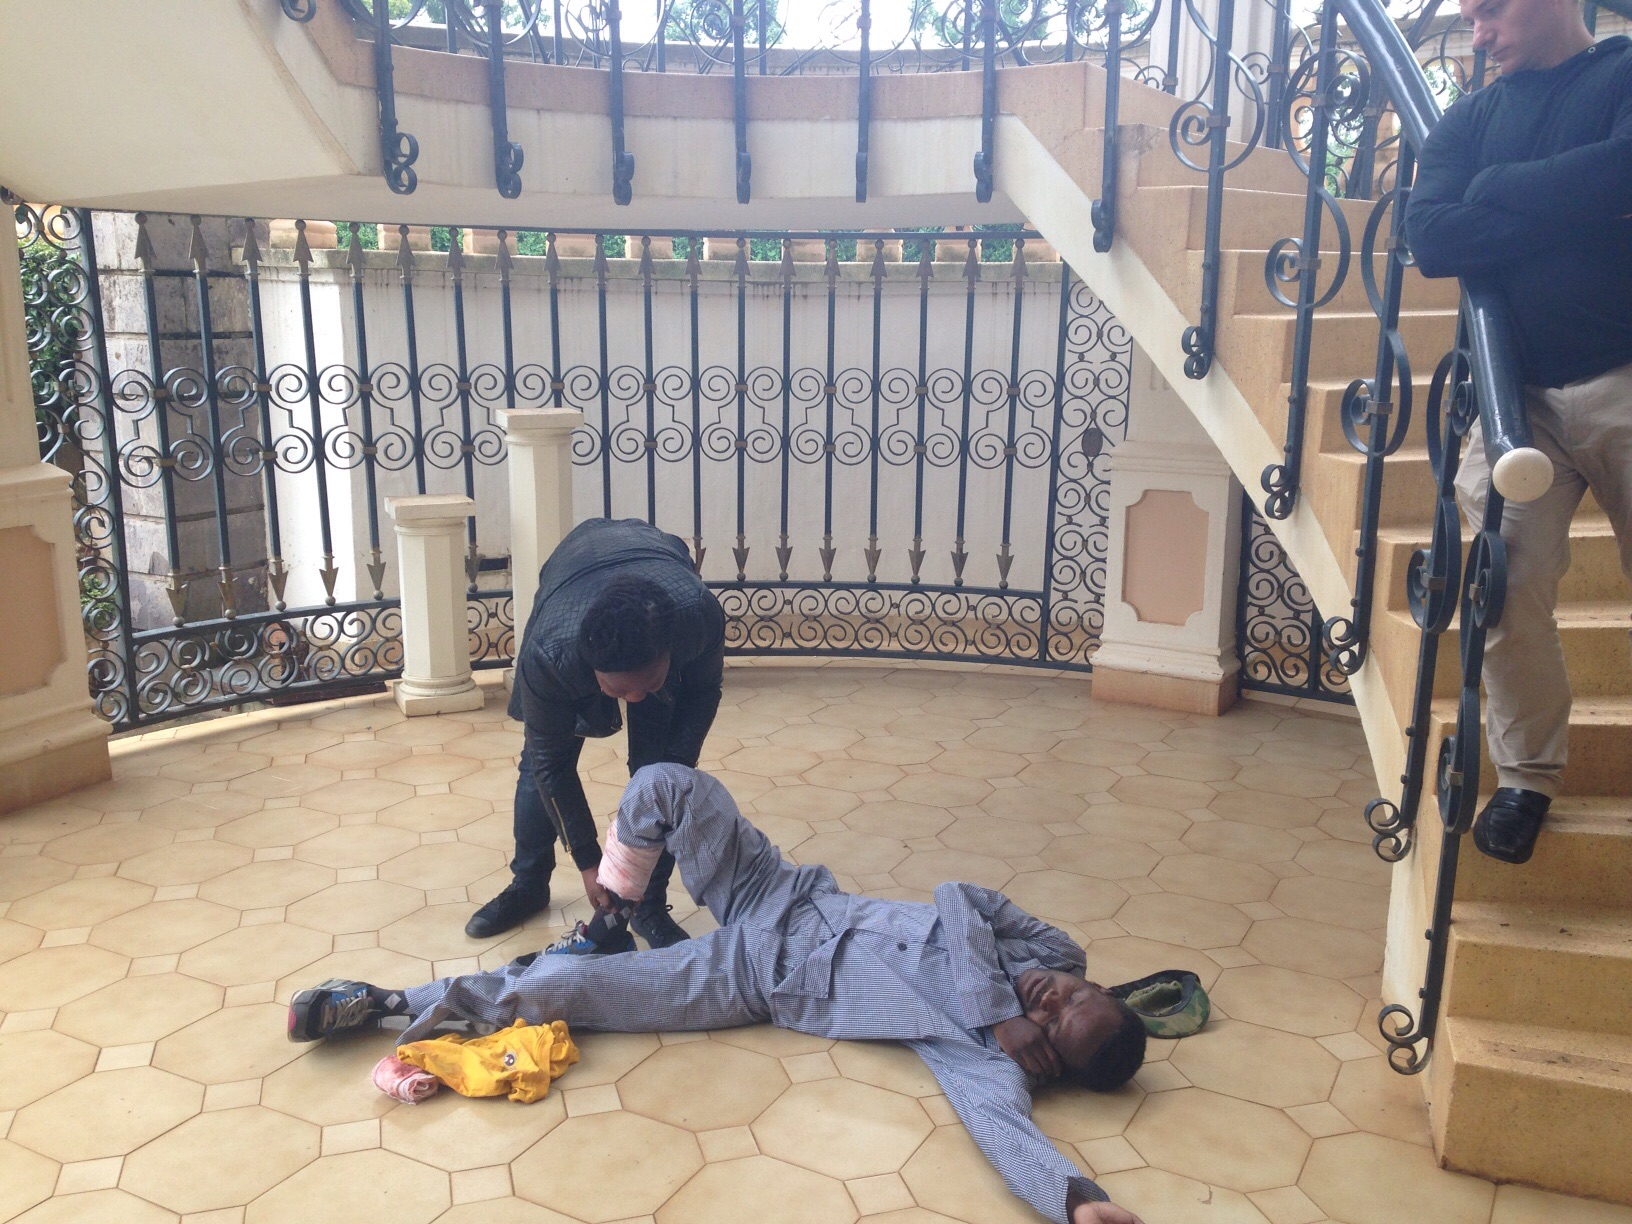 Shamiso putting a bullet victim in recovery pose. She did a great job!